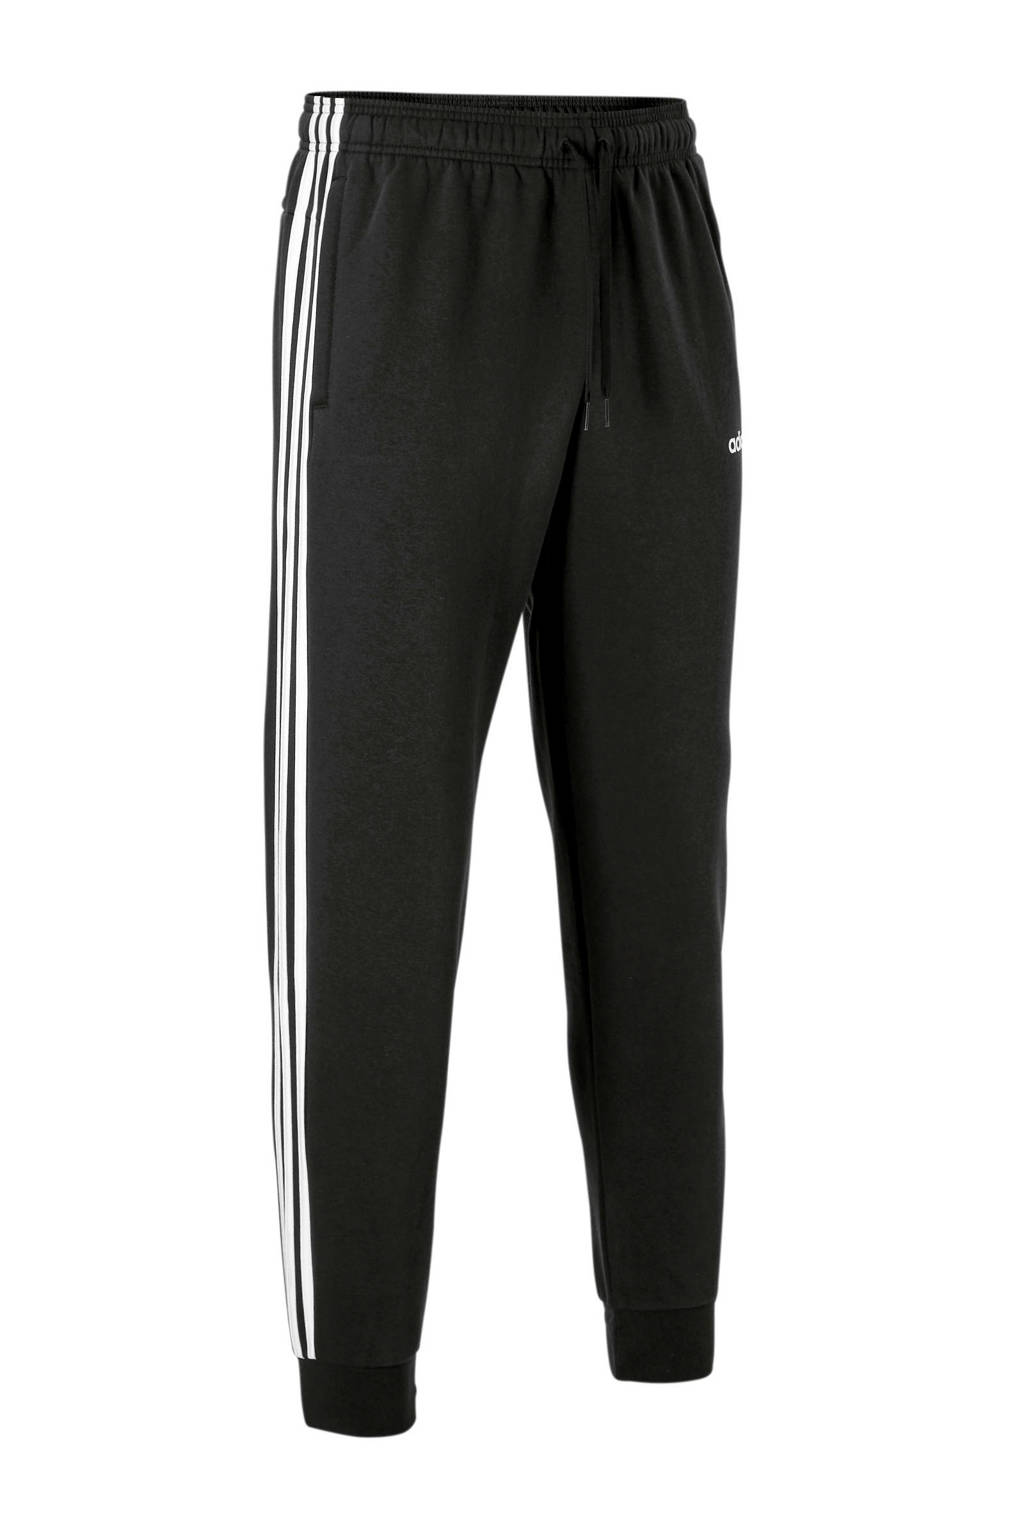 adidas Performance   fleecesportbroek zwart/wit, Zwart/wit